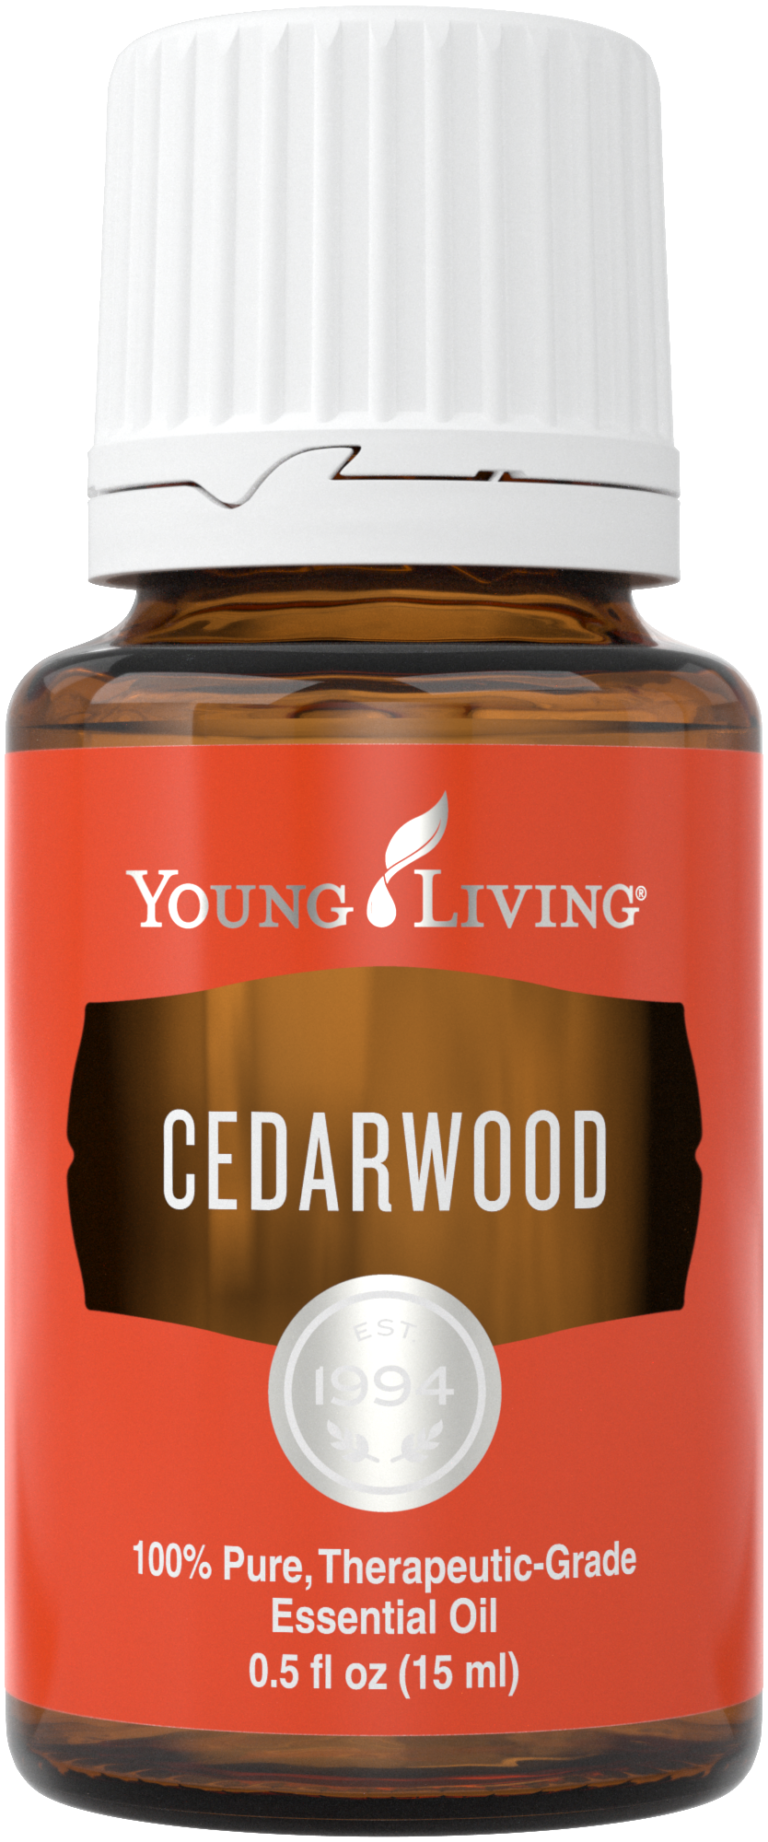 cedarwood_15ml_silo_us_2016_24527321125_o